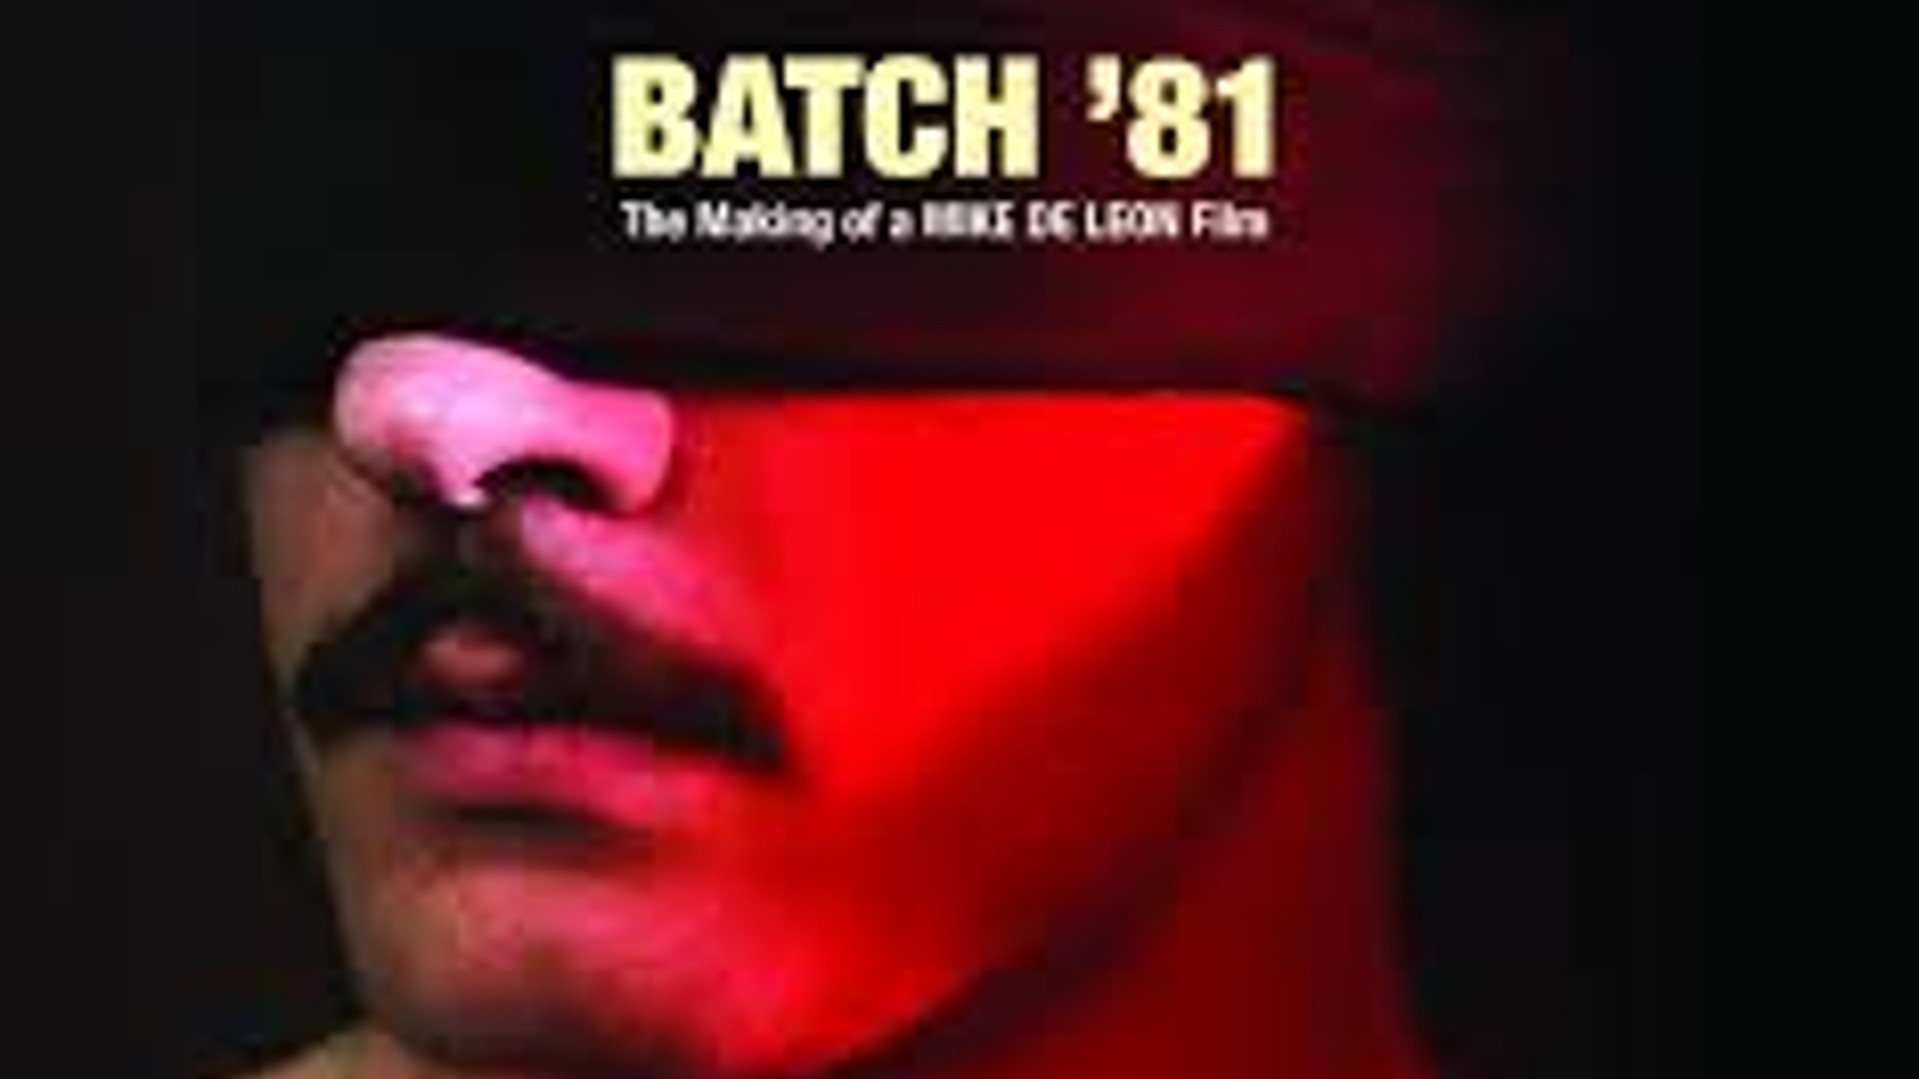 Batch '81 (1982, Mike De Leon)